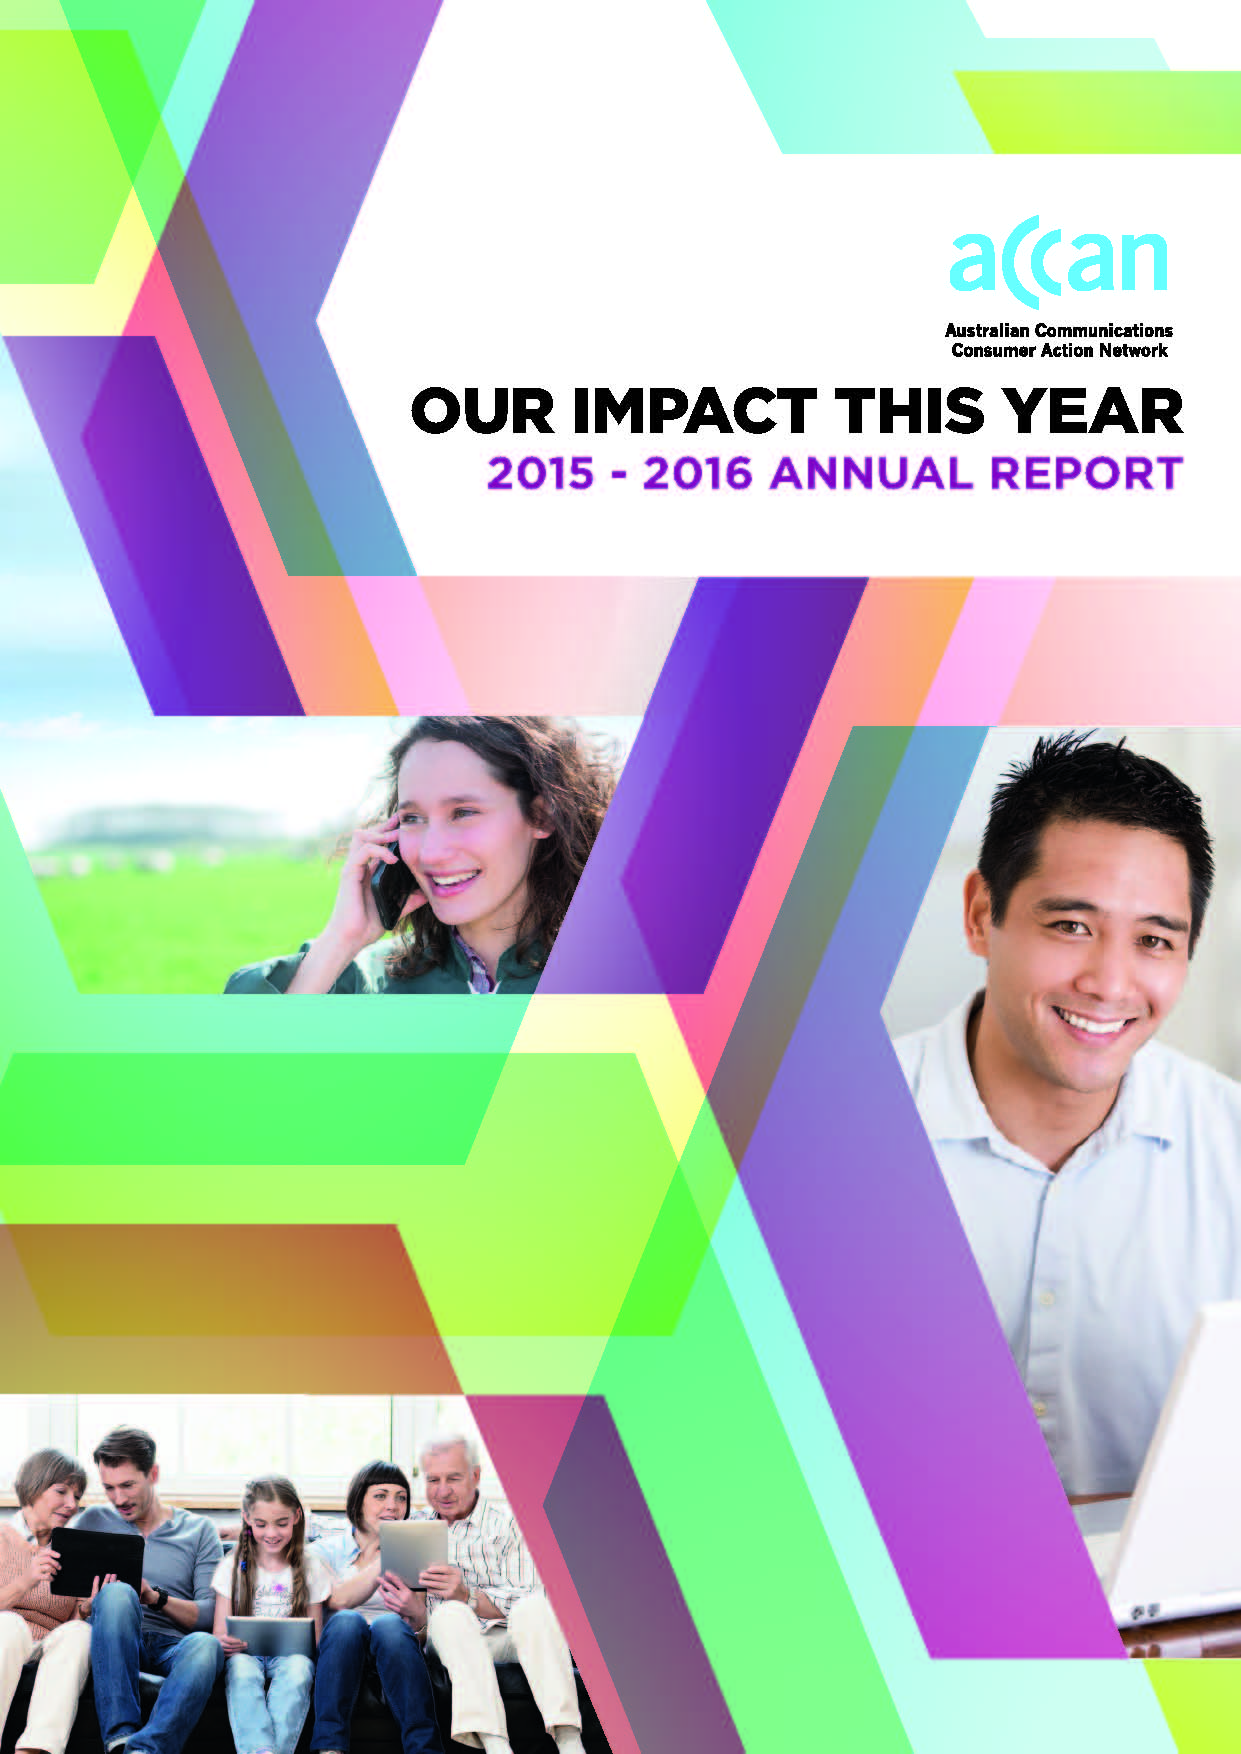 2015-2016 Annual Report cover